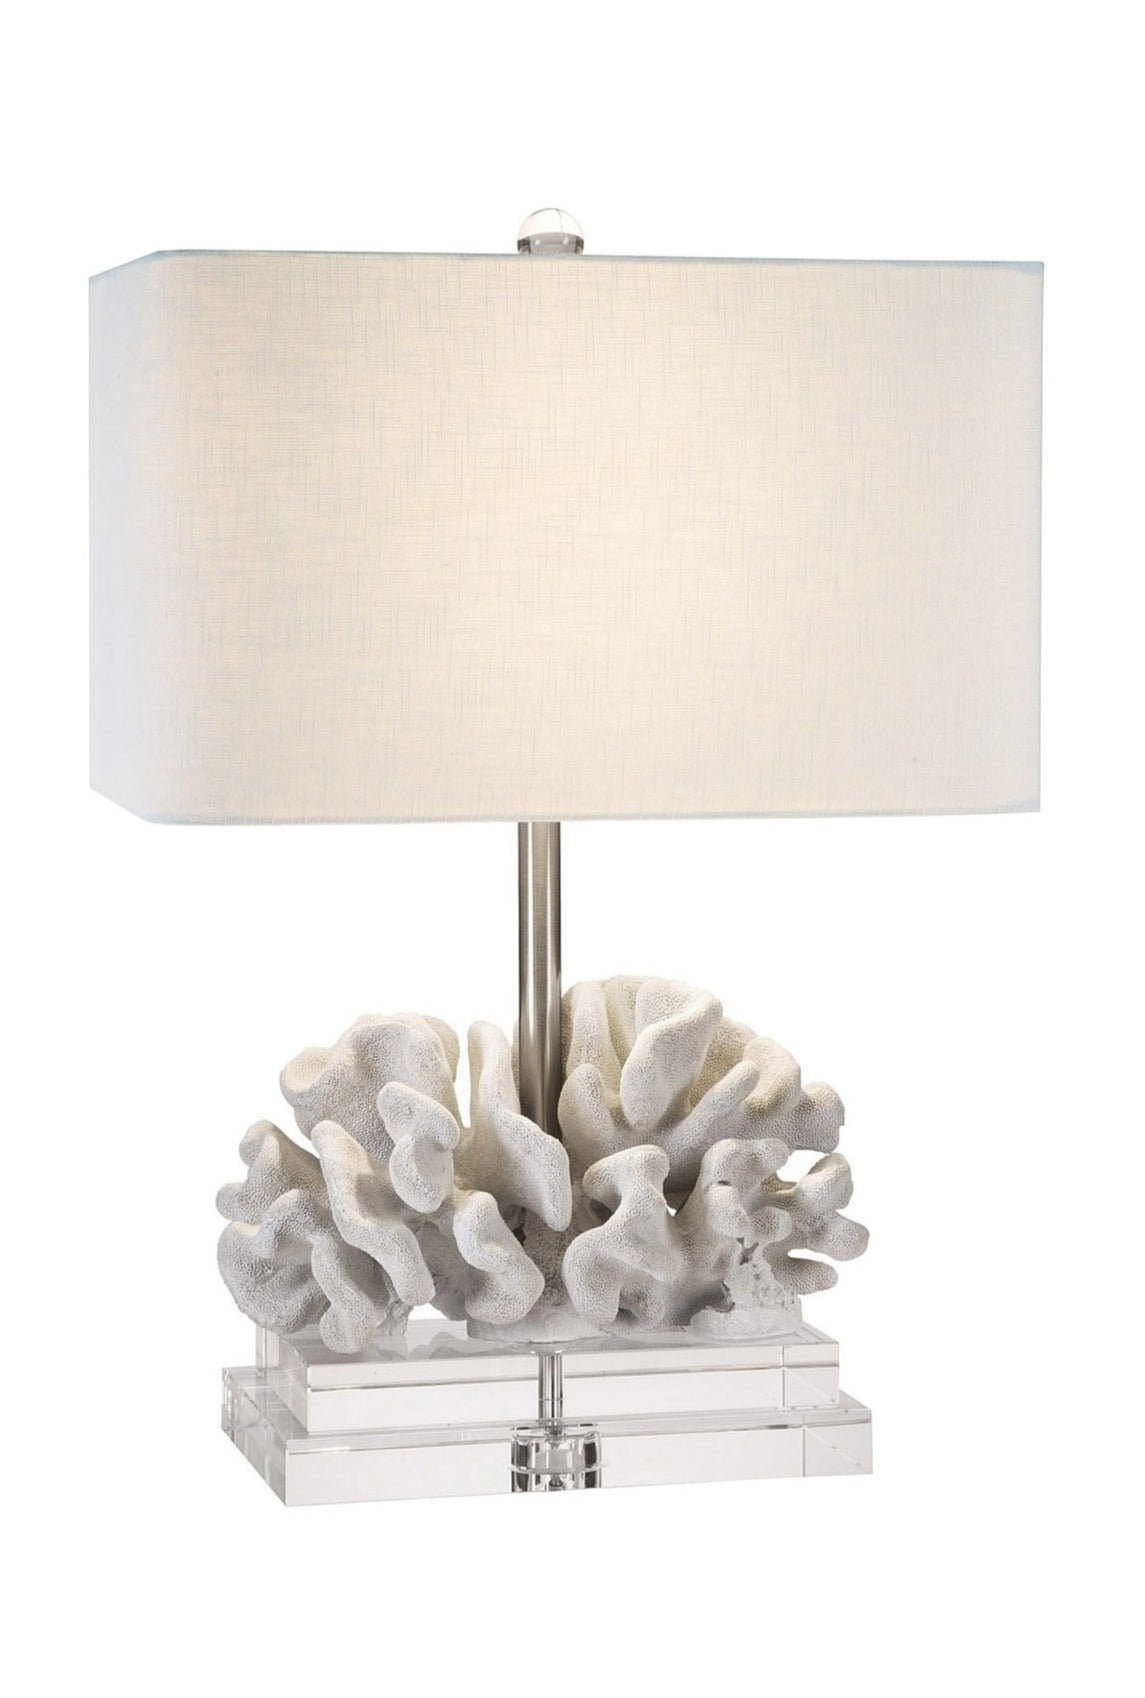 "Coastal Retreat Elkhorn Coral 22"" Table Lamp - Couture Lamps"